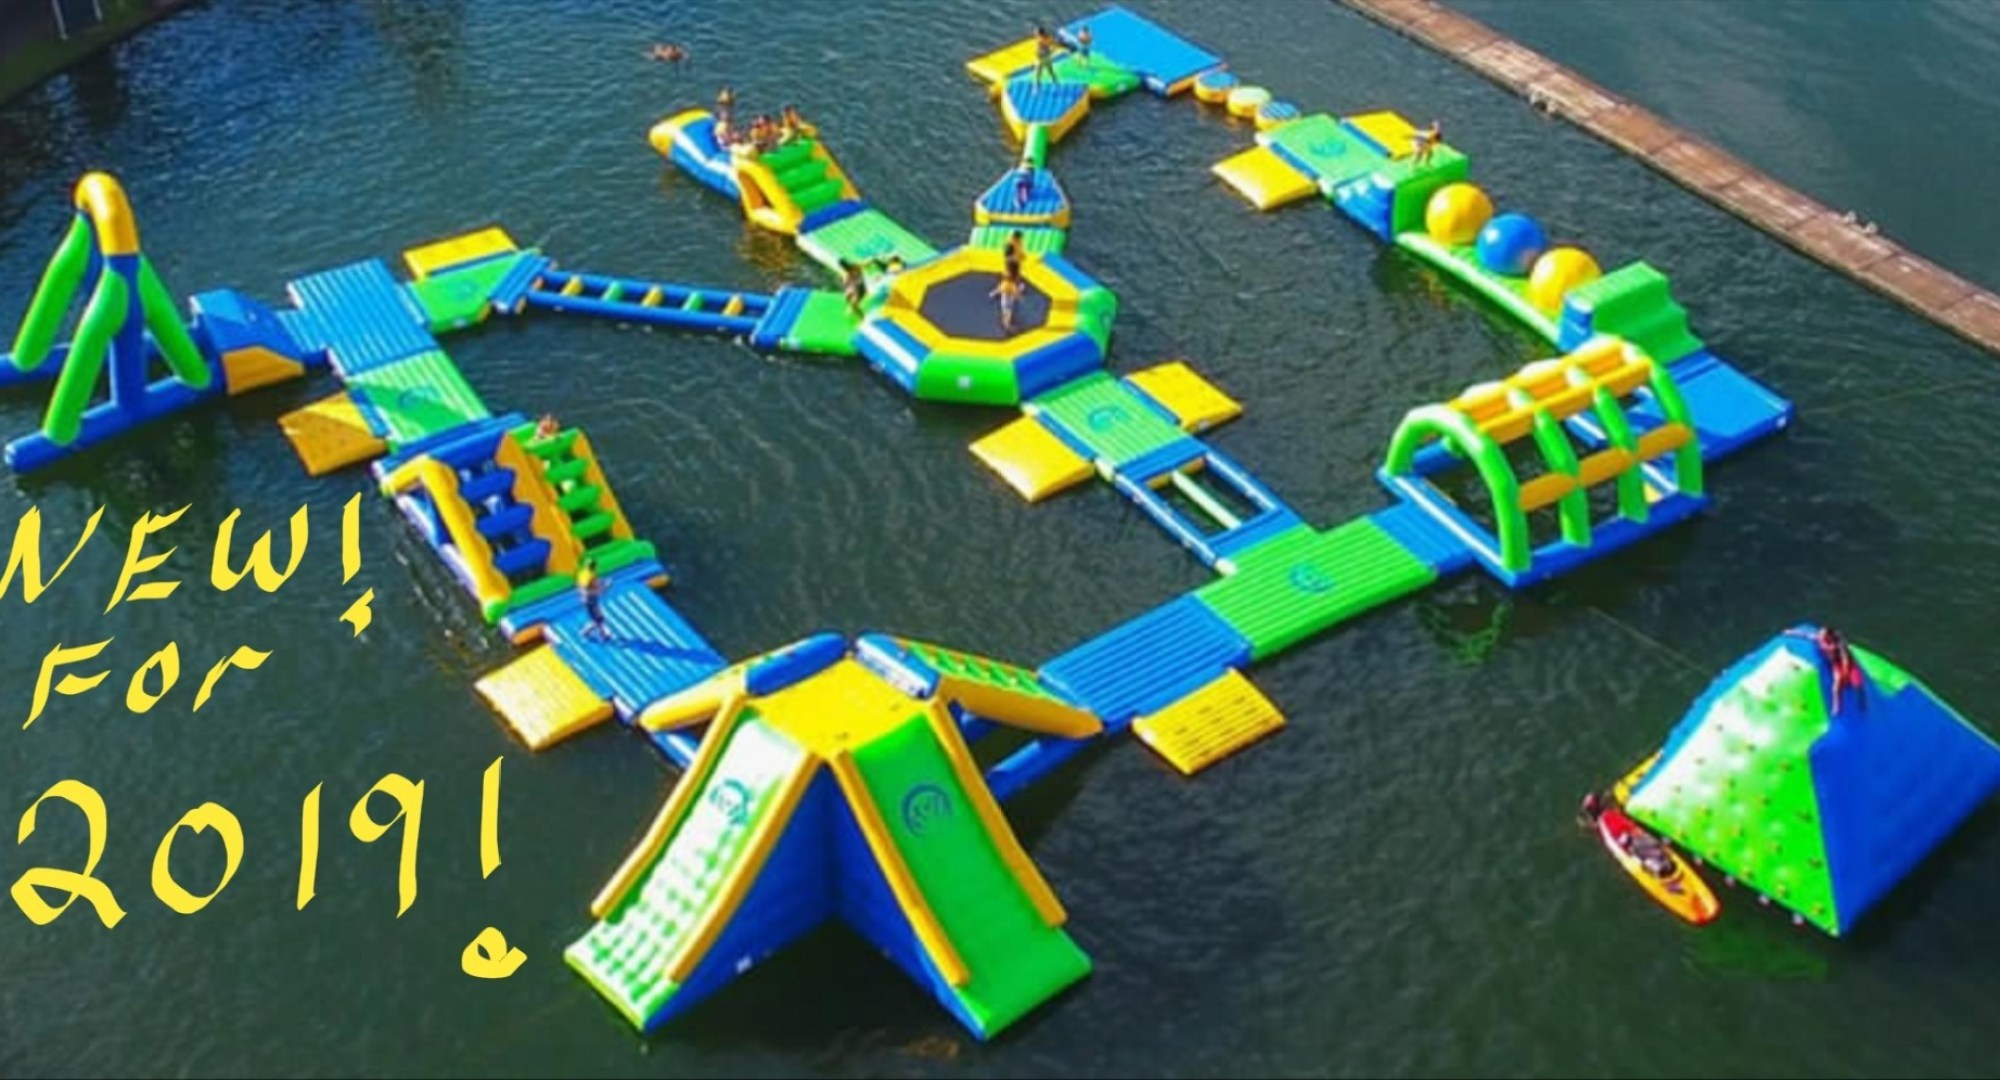 NEW FOR WEST LAKE WILLY WATER PARK SANDBAVNKS